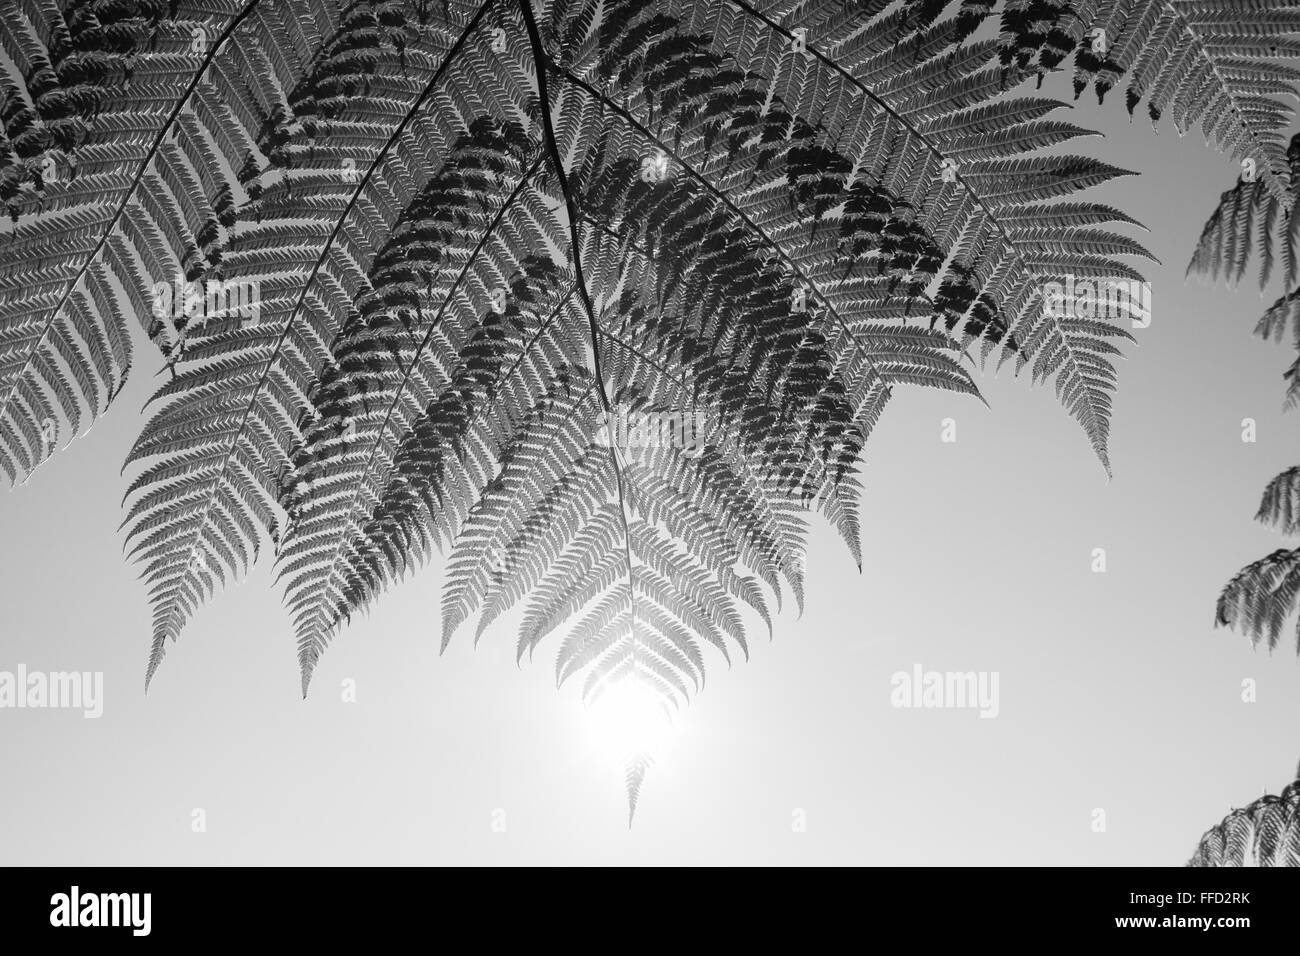 Waitakere,Auckland,North Island,New Zealand,Pacific,fern,nature,natural,green,leaf,leaves,maori,symbol,traditional,iconic,image, - Stock Image